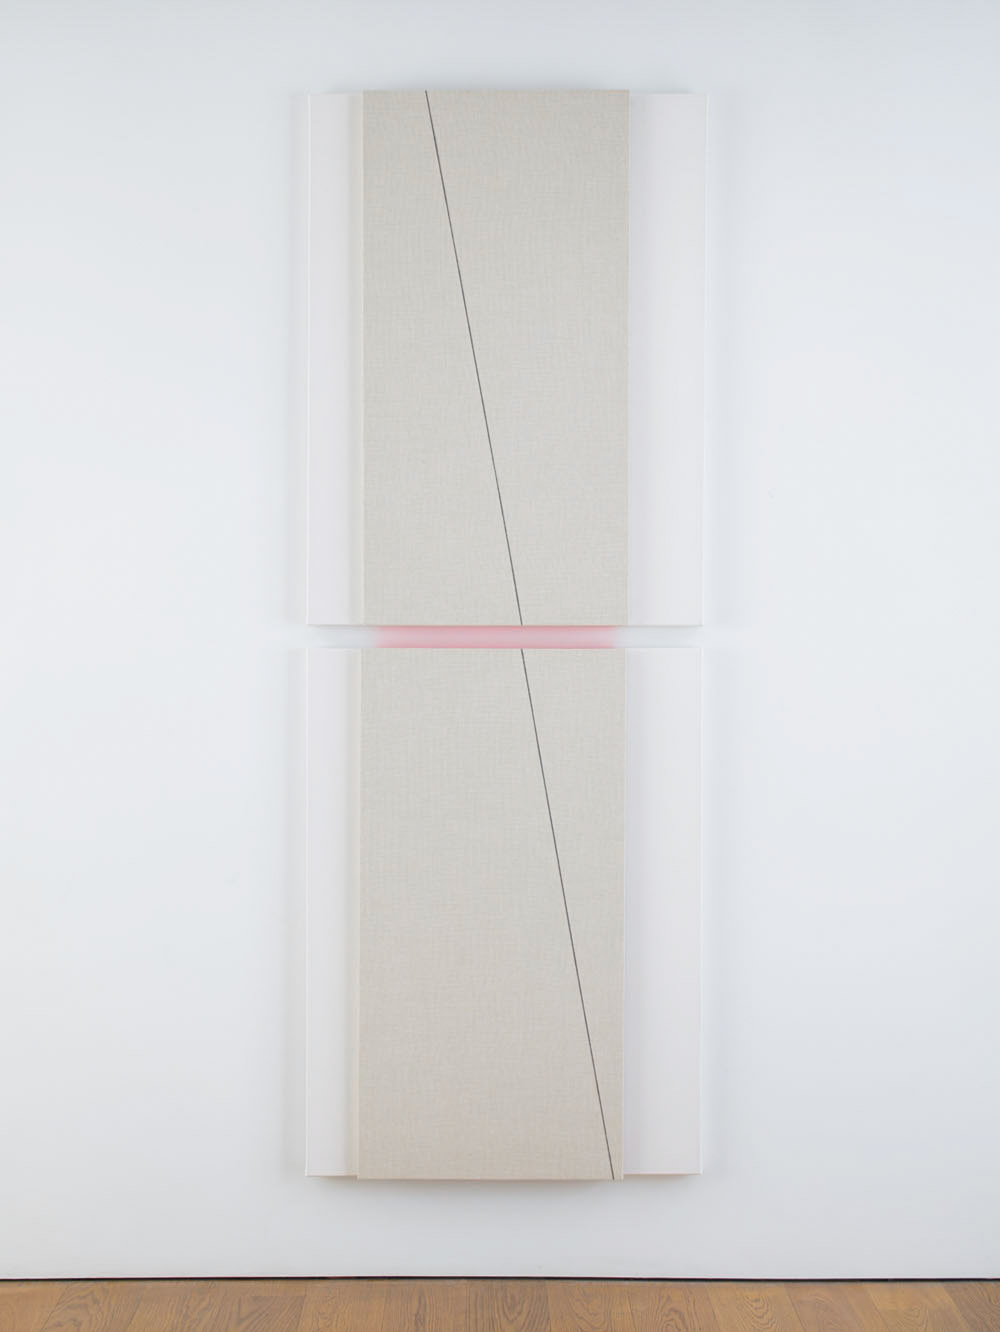 Vertical into Crescendo (light), 2014 --Acoustic absorber panel and acrylic paint on canvas 2 parts: 48 x 36 inches each, 98.25 x 36 inches overall